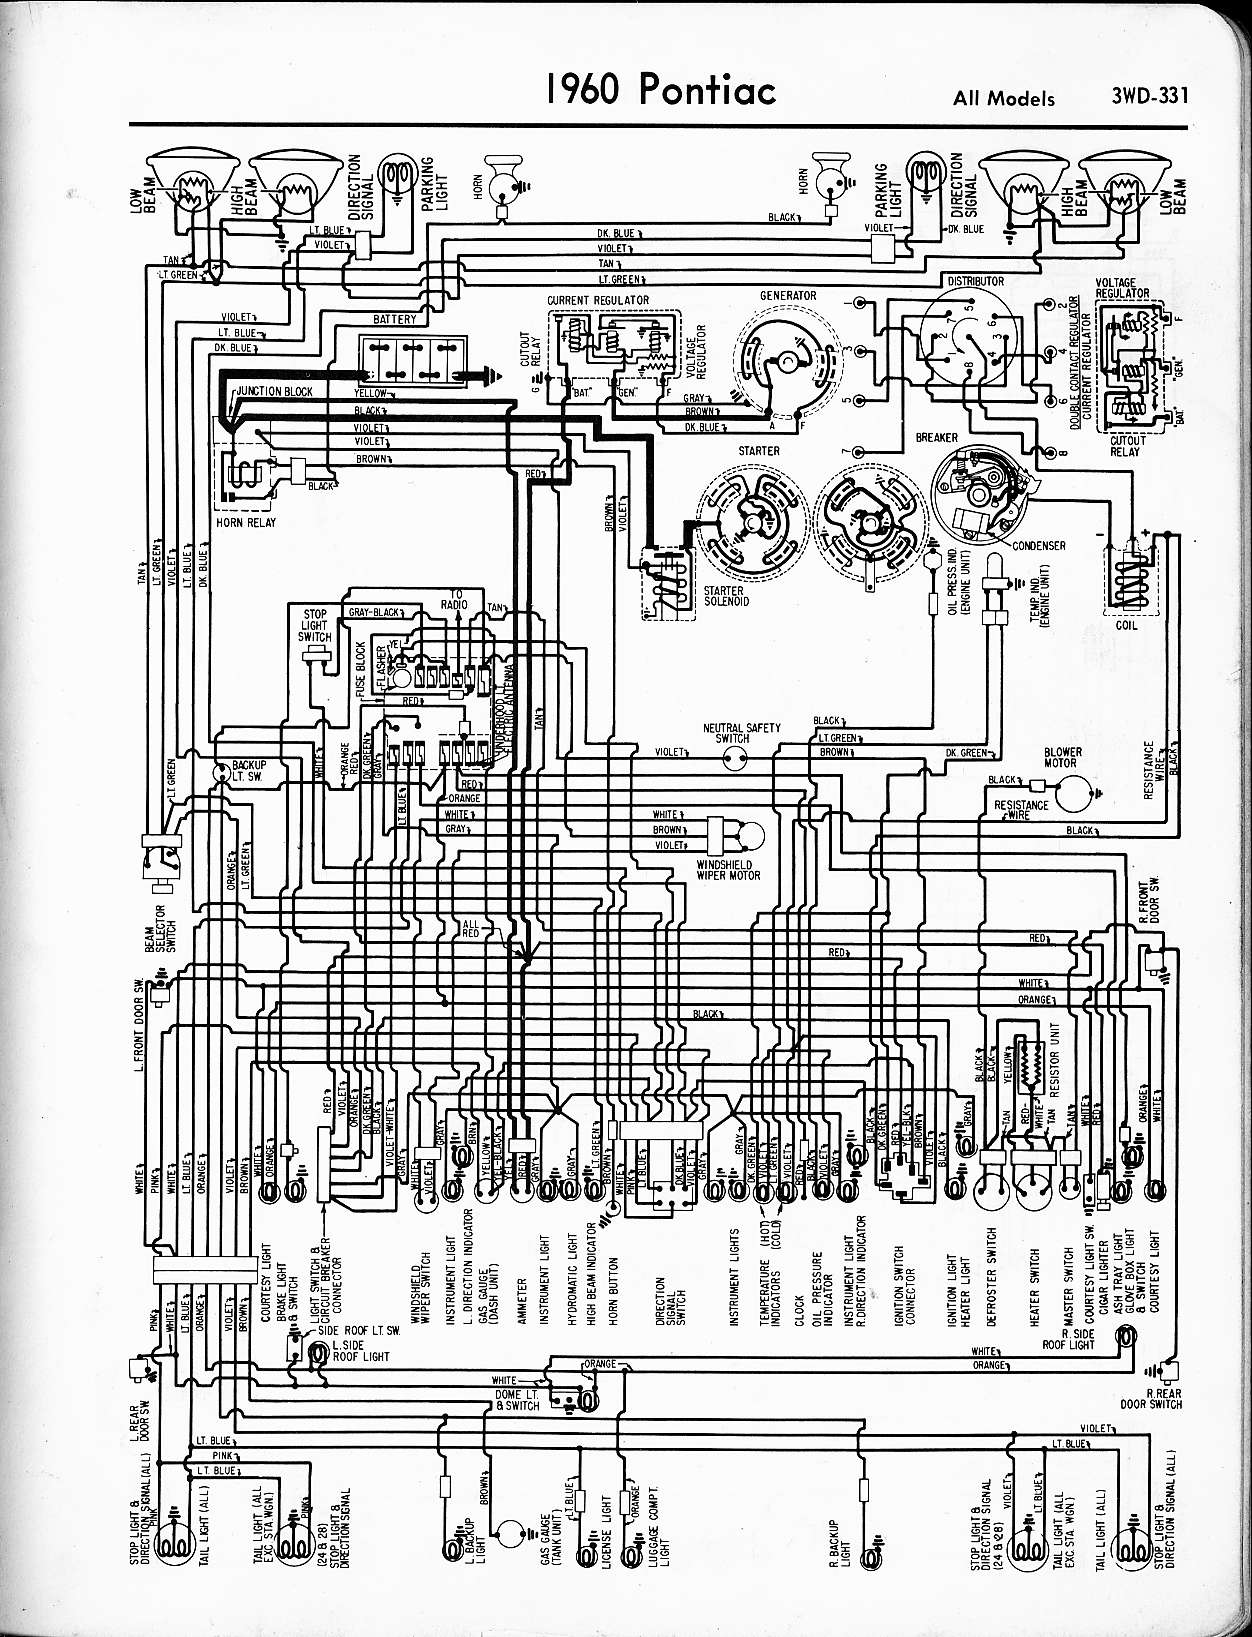 1966 pontiac wiring diagram data wiring diagram blog 1976 Pontiac LeMans 1966 pontiac wiring diagram